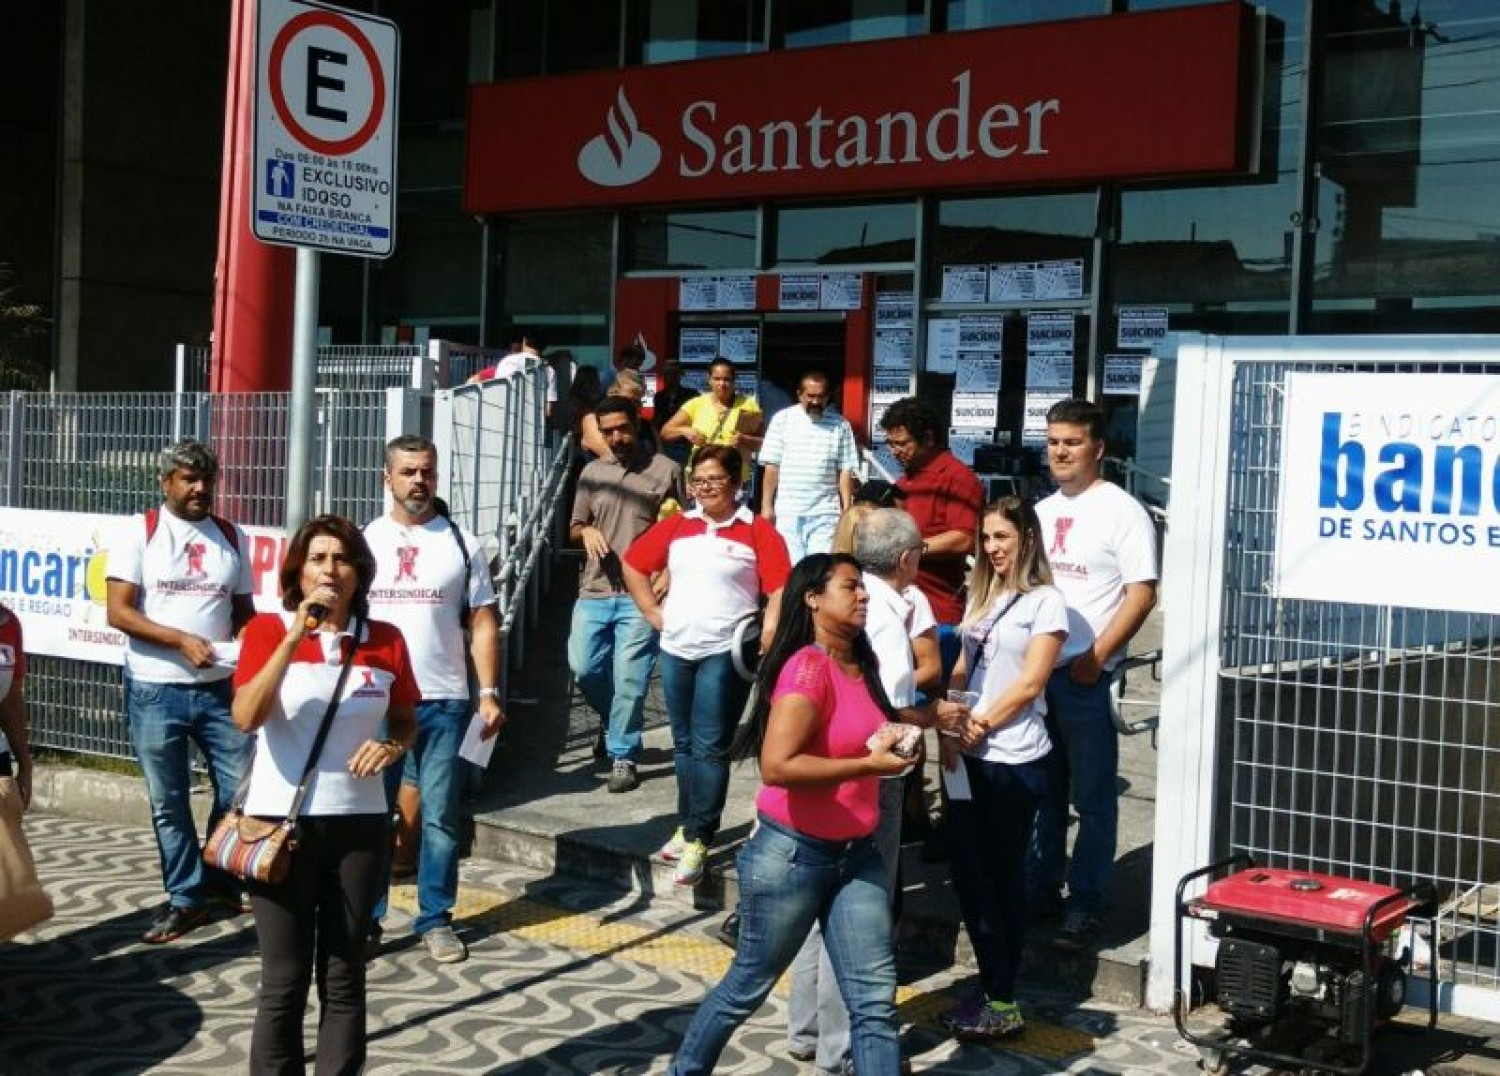 Assinado aditivo do Santander